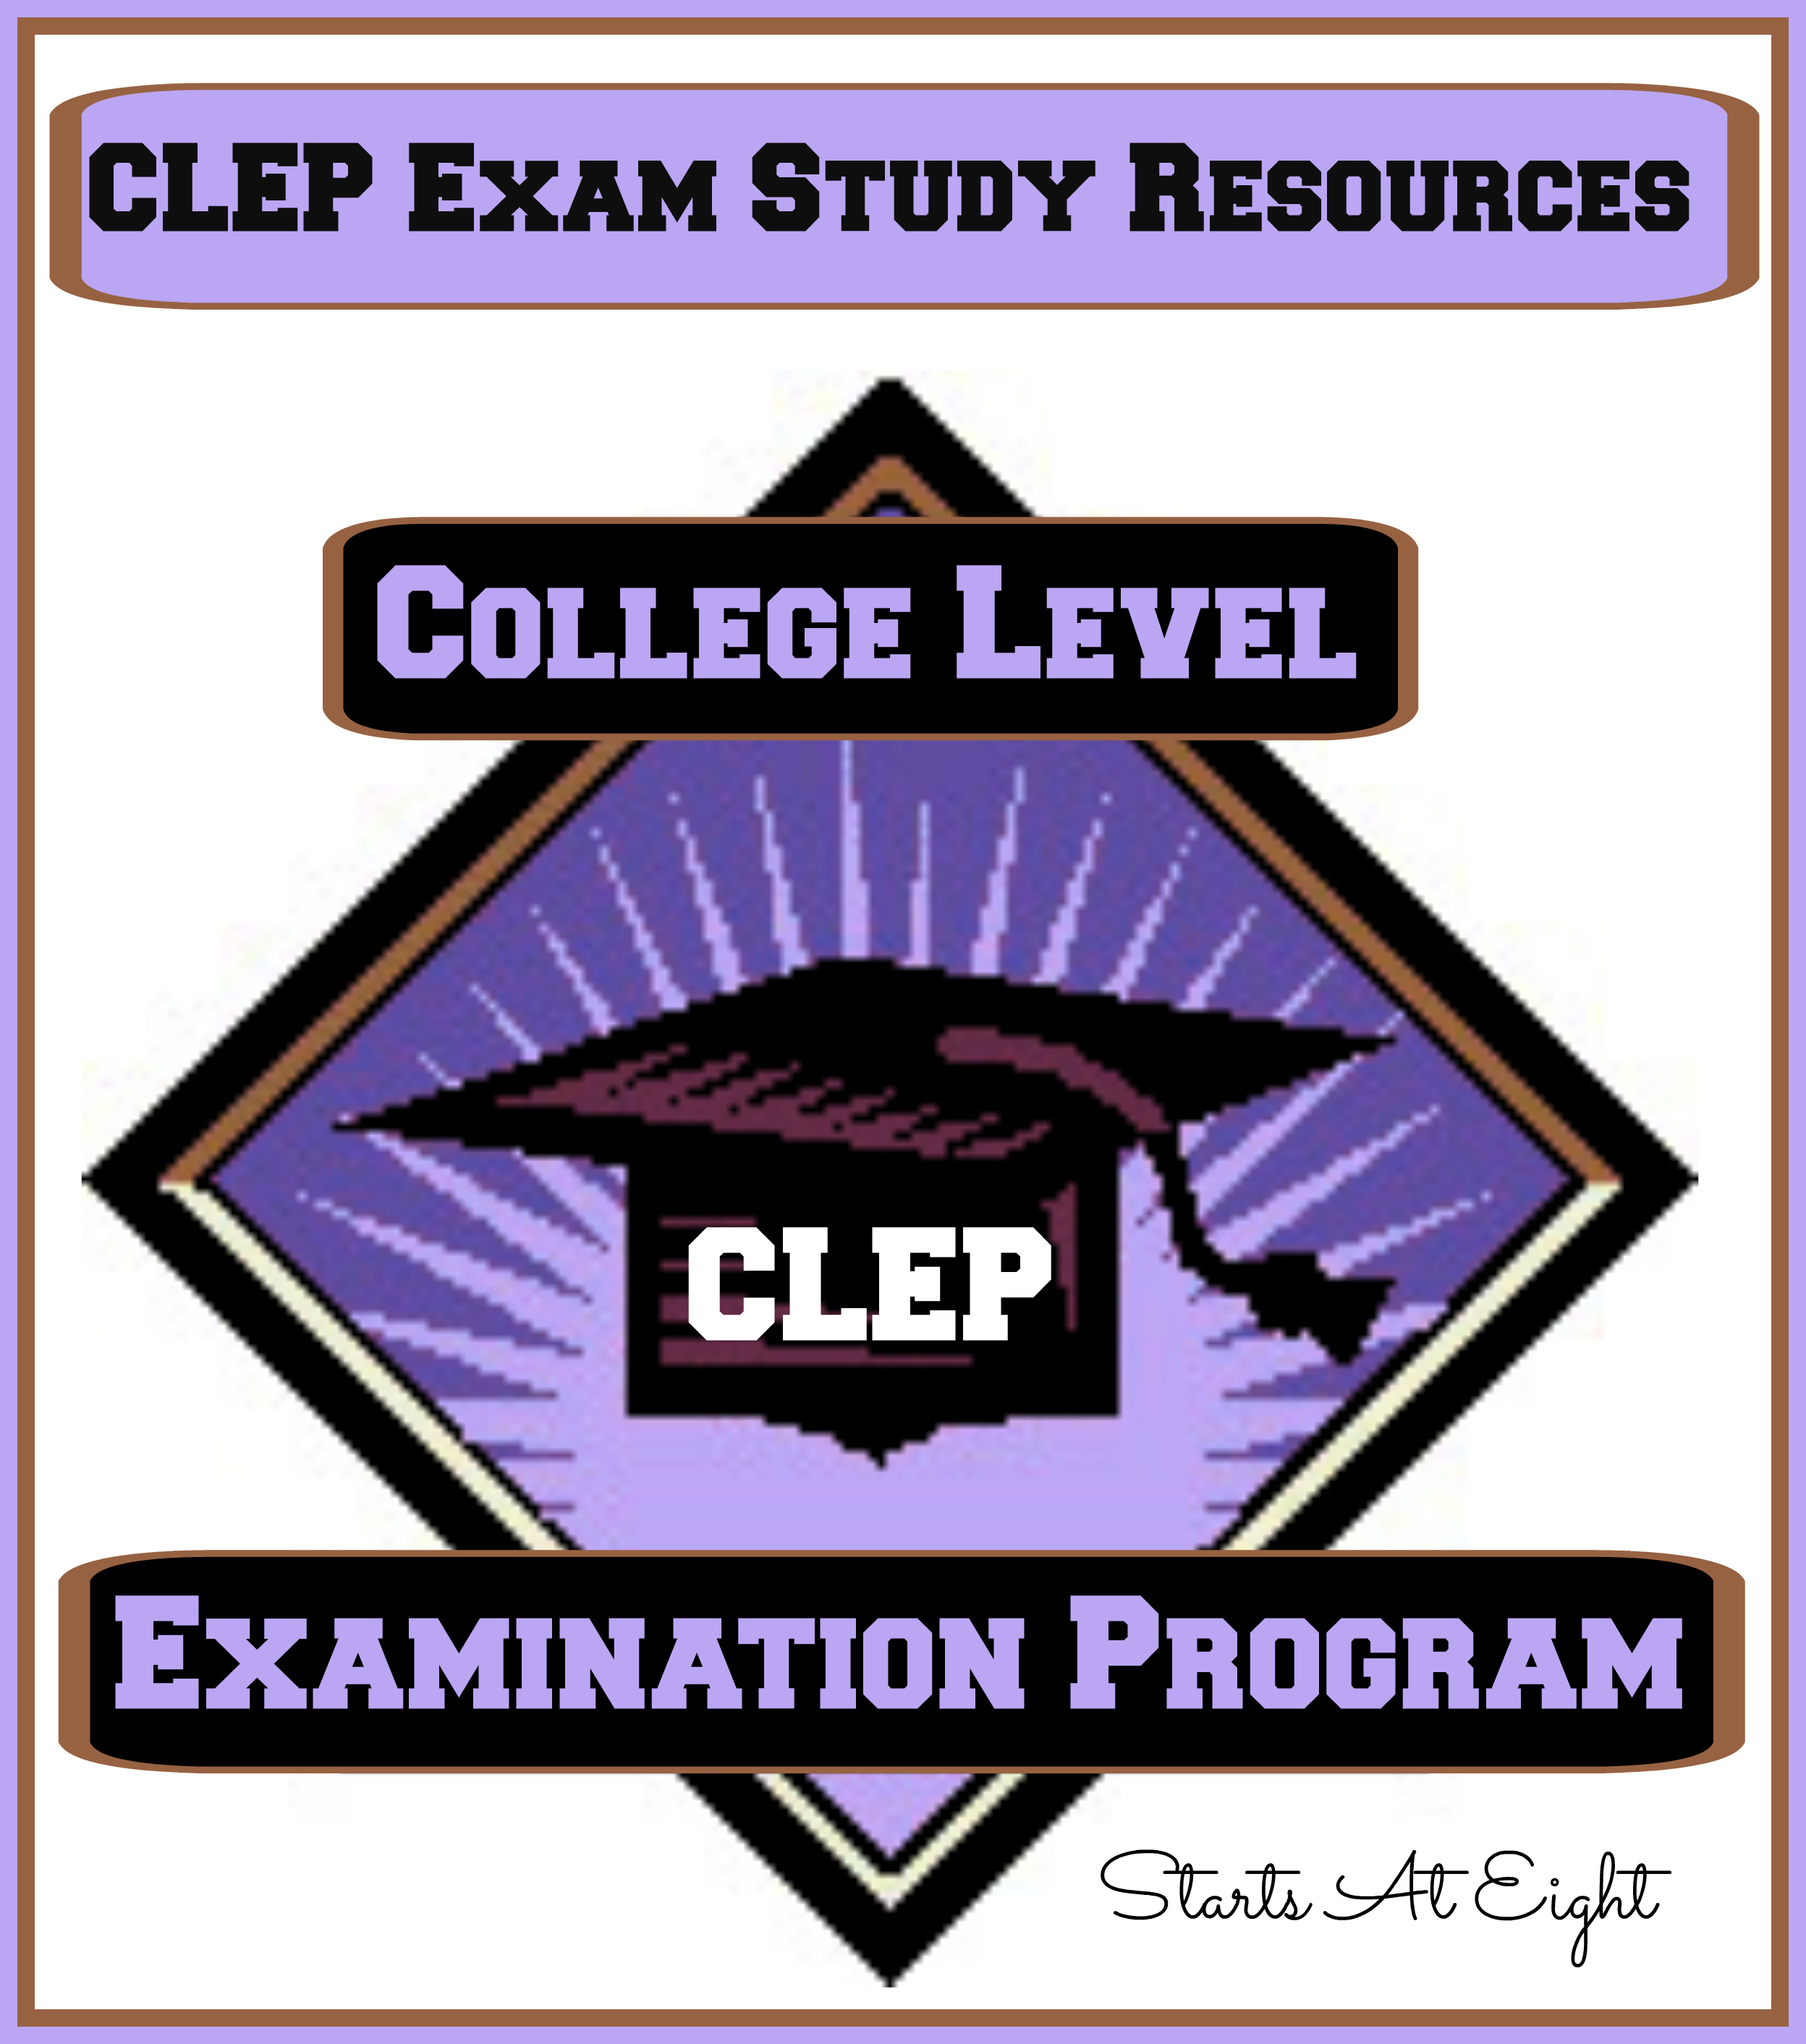 CLEP Resource Guide - Columbia College